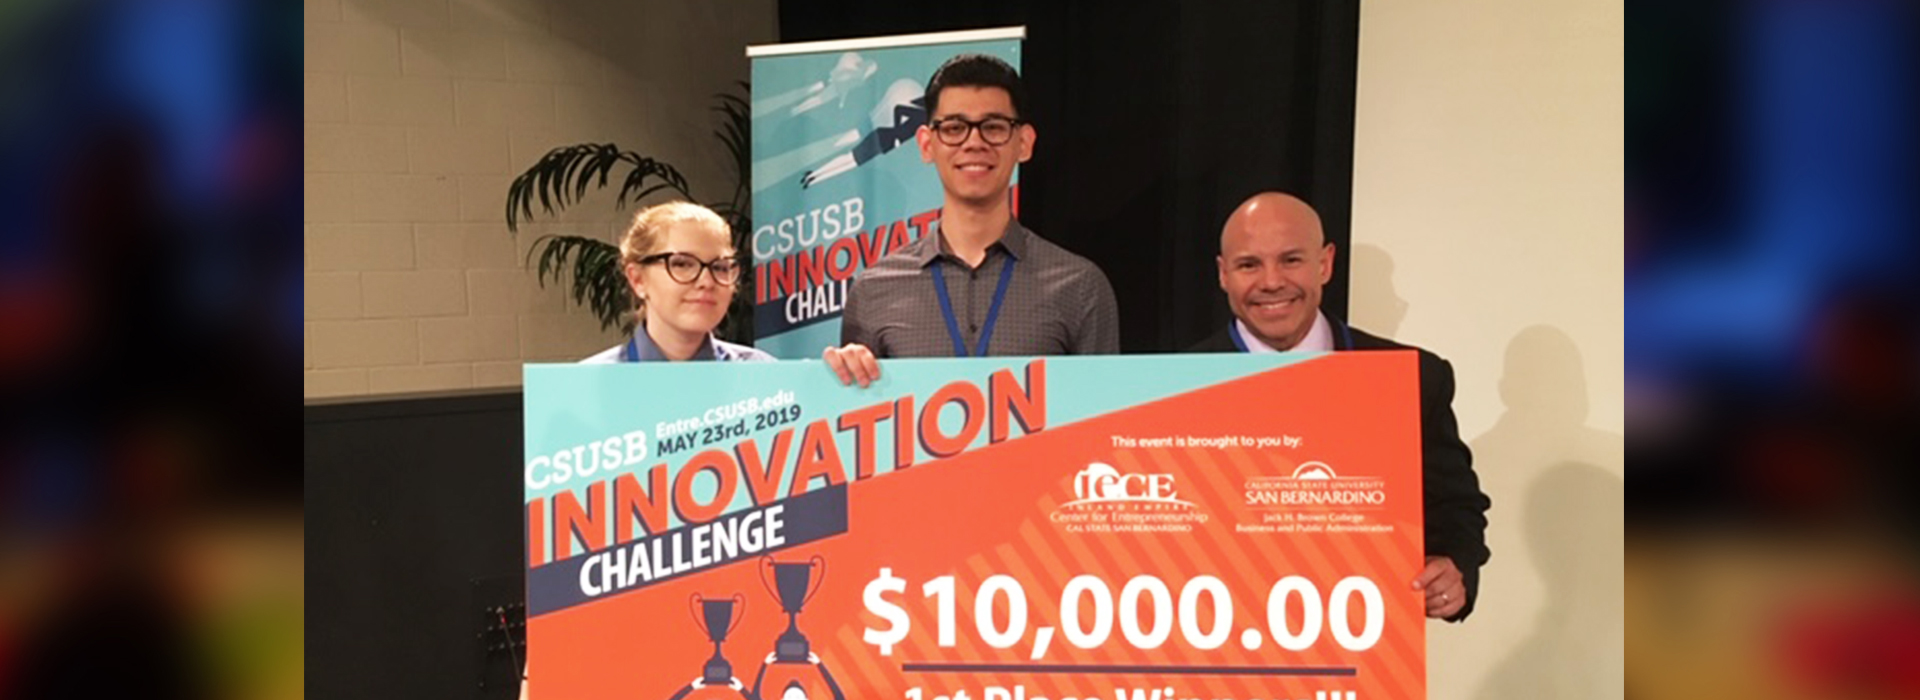 Team Muscle Tonic Relief wins third annual Innovation Challenge at CSUSB